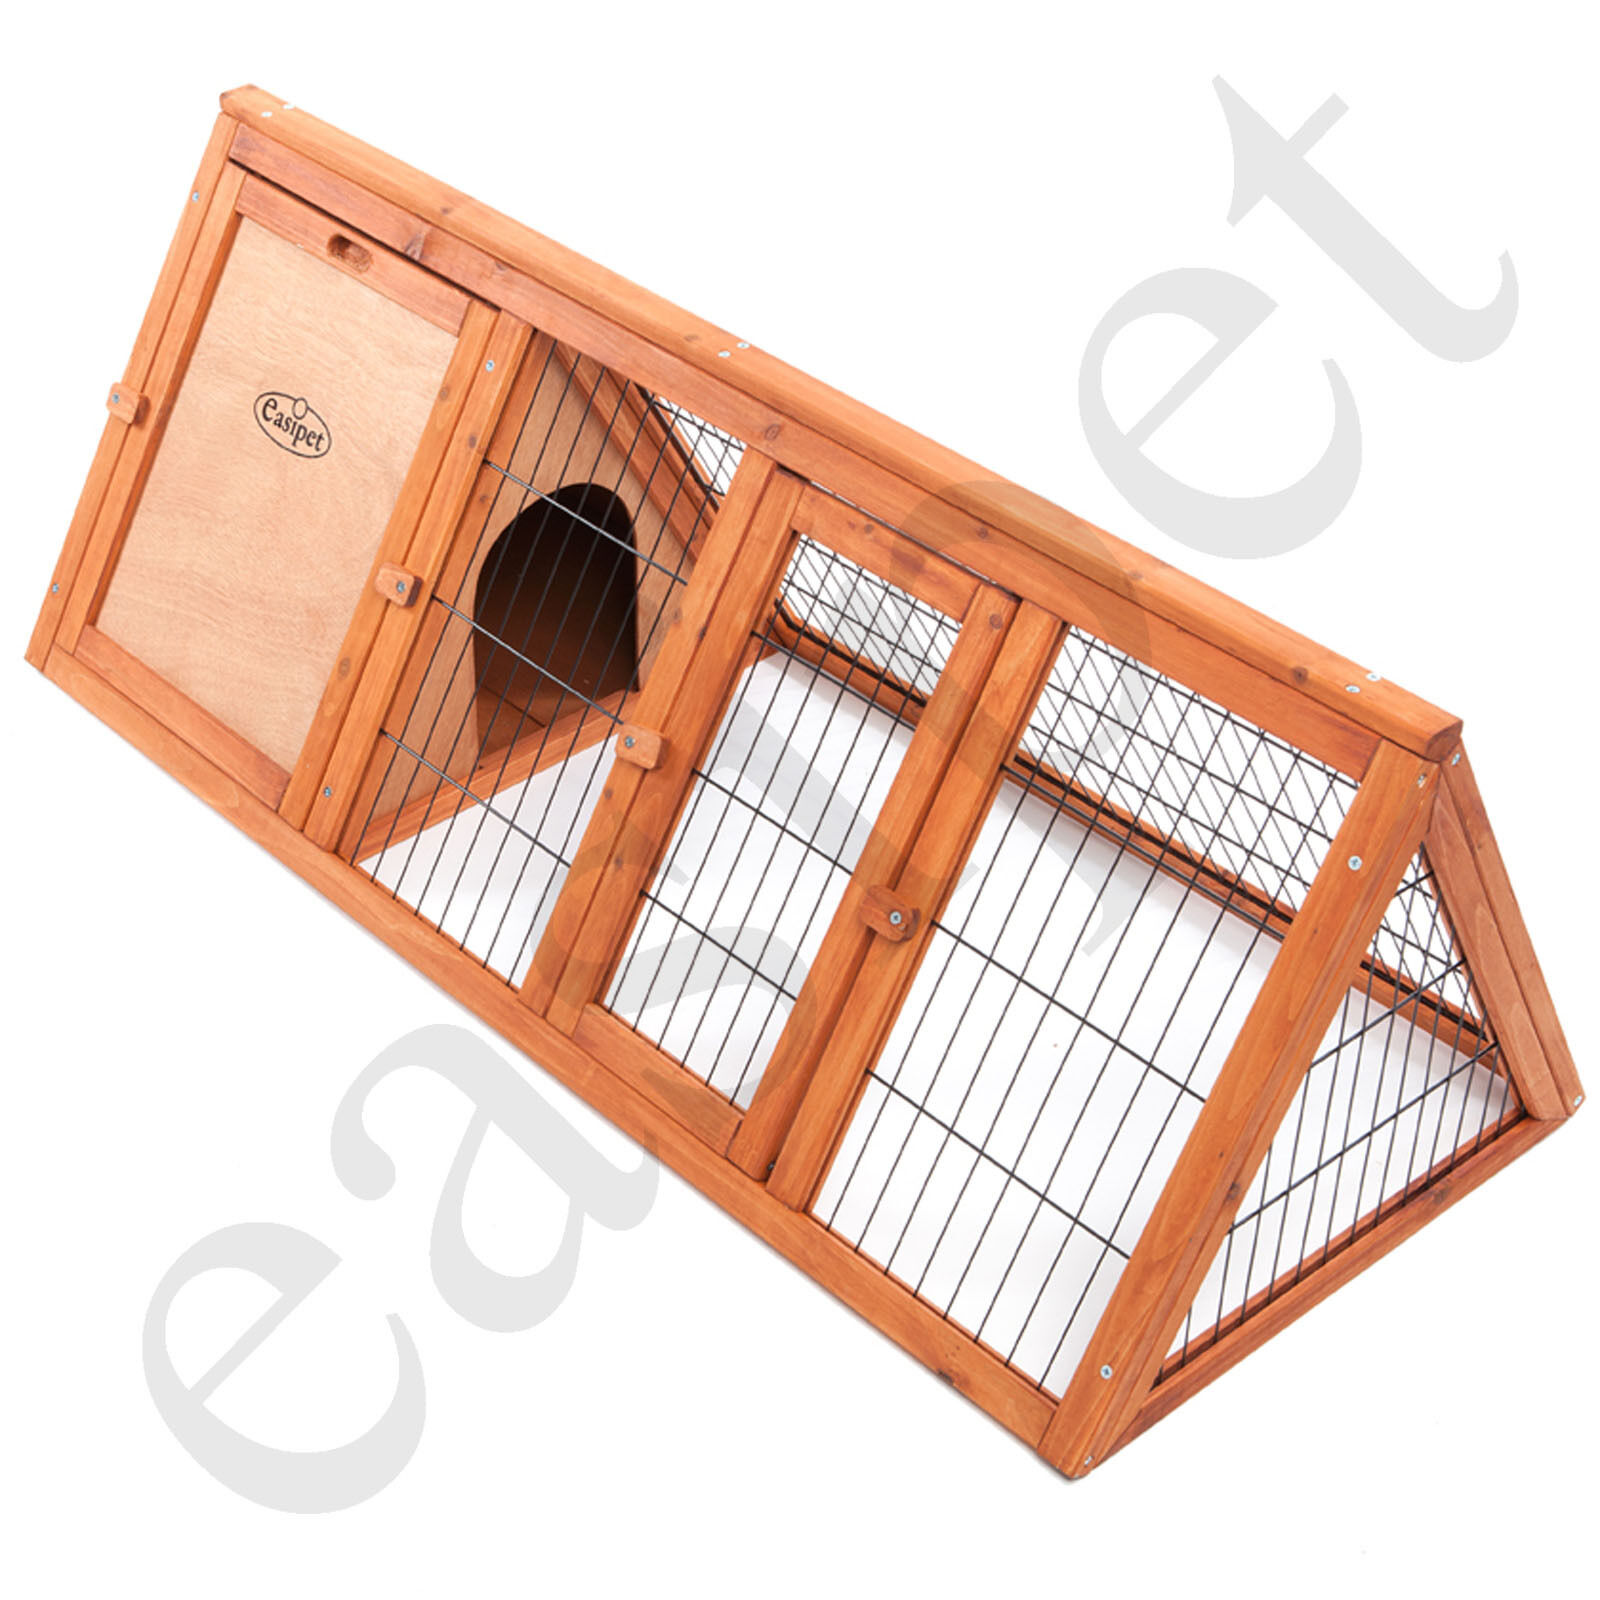 Wooden rabbit guinea pig hutch 46 wood pet ferret coop for Free guinea pig hutch